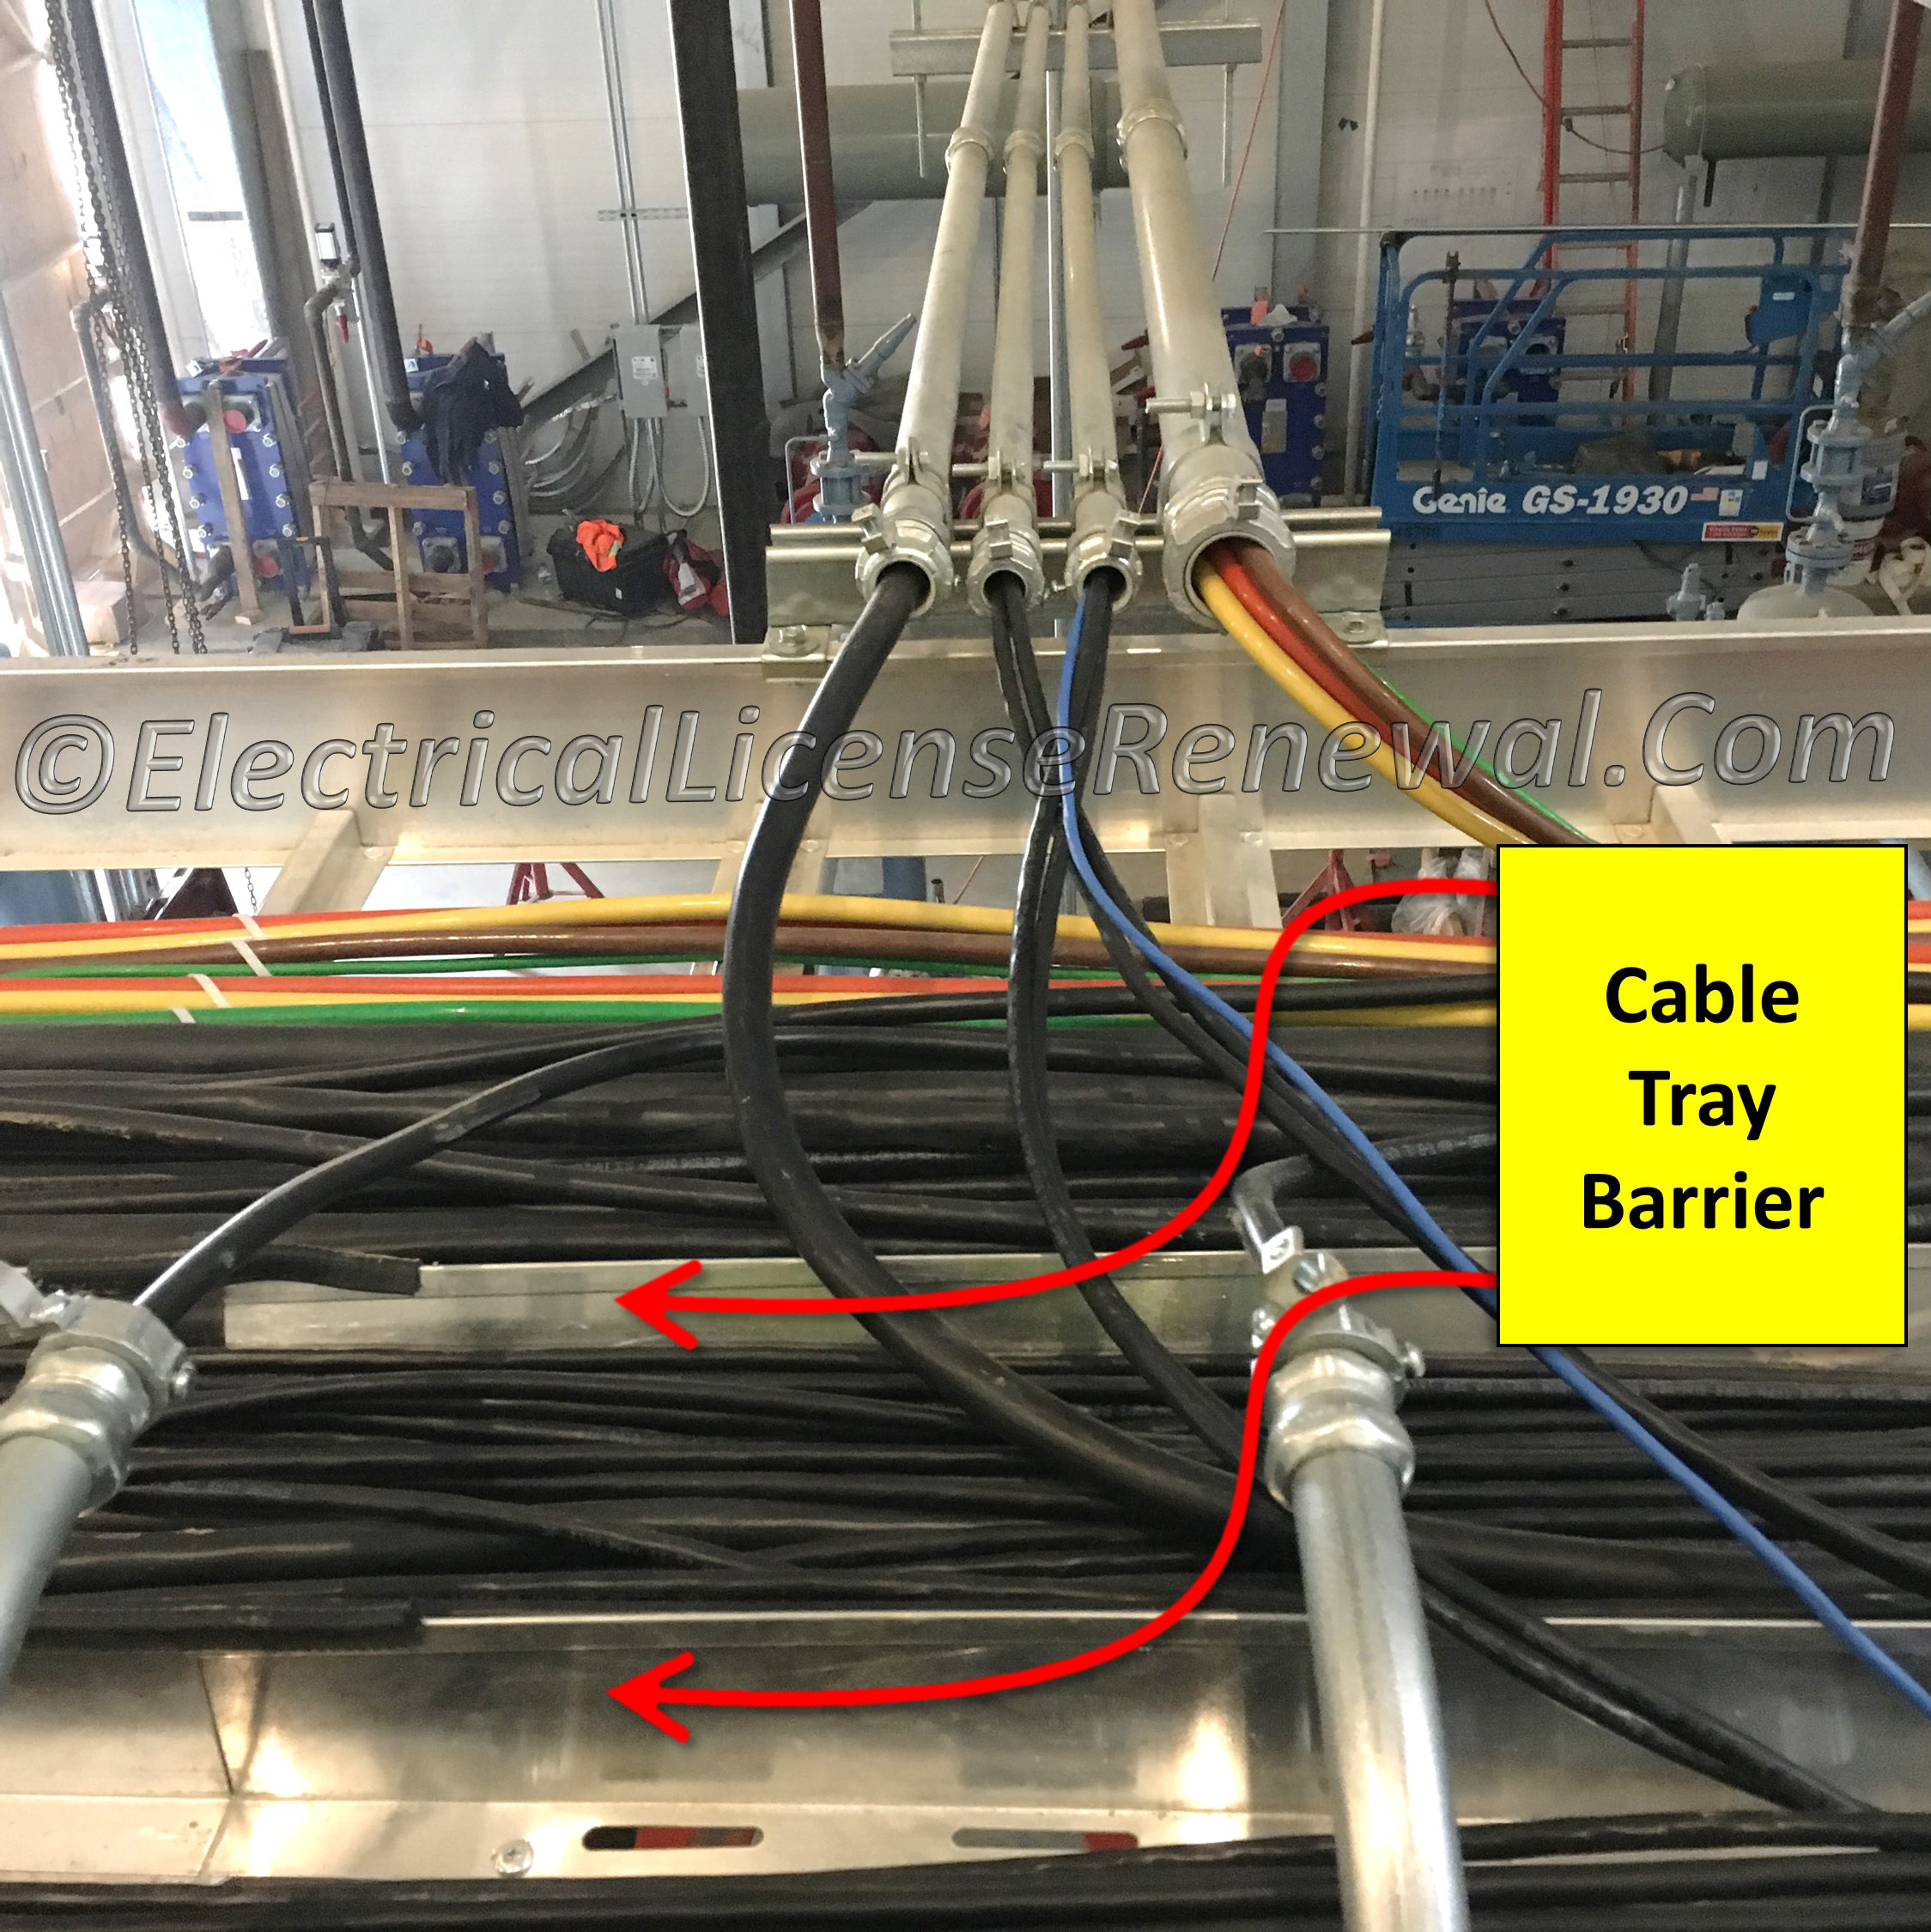 392 20 cable and conductor installation